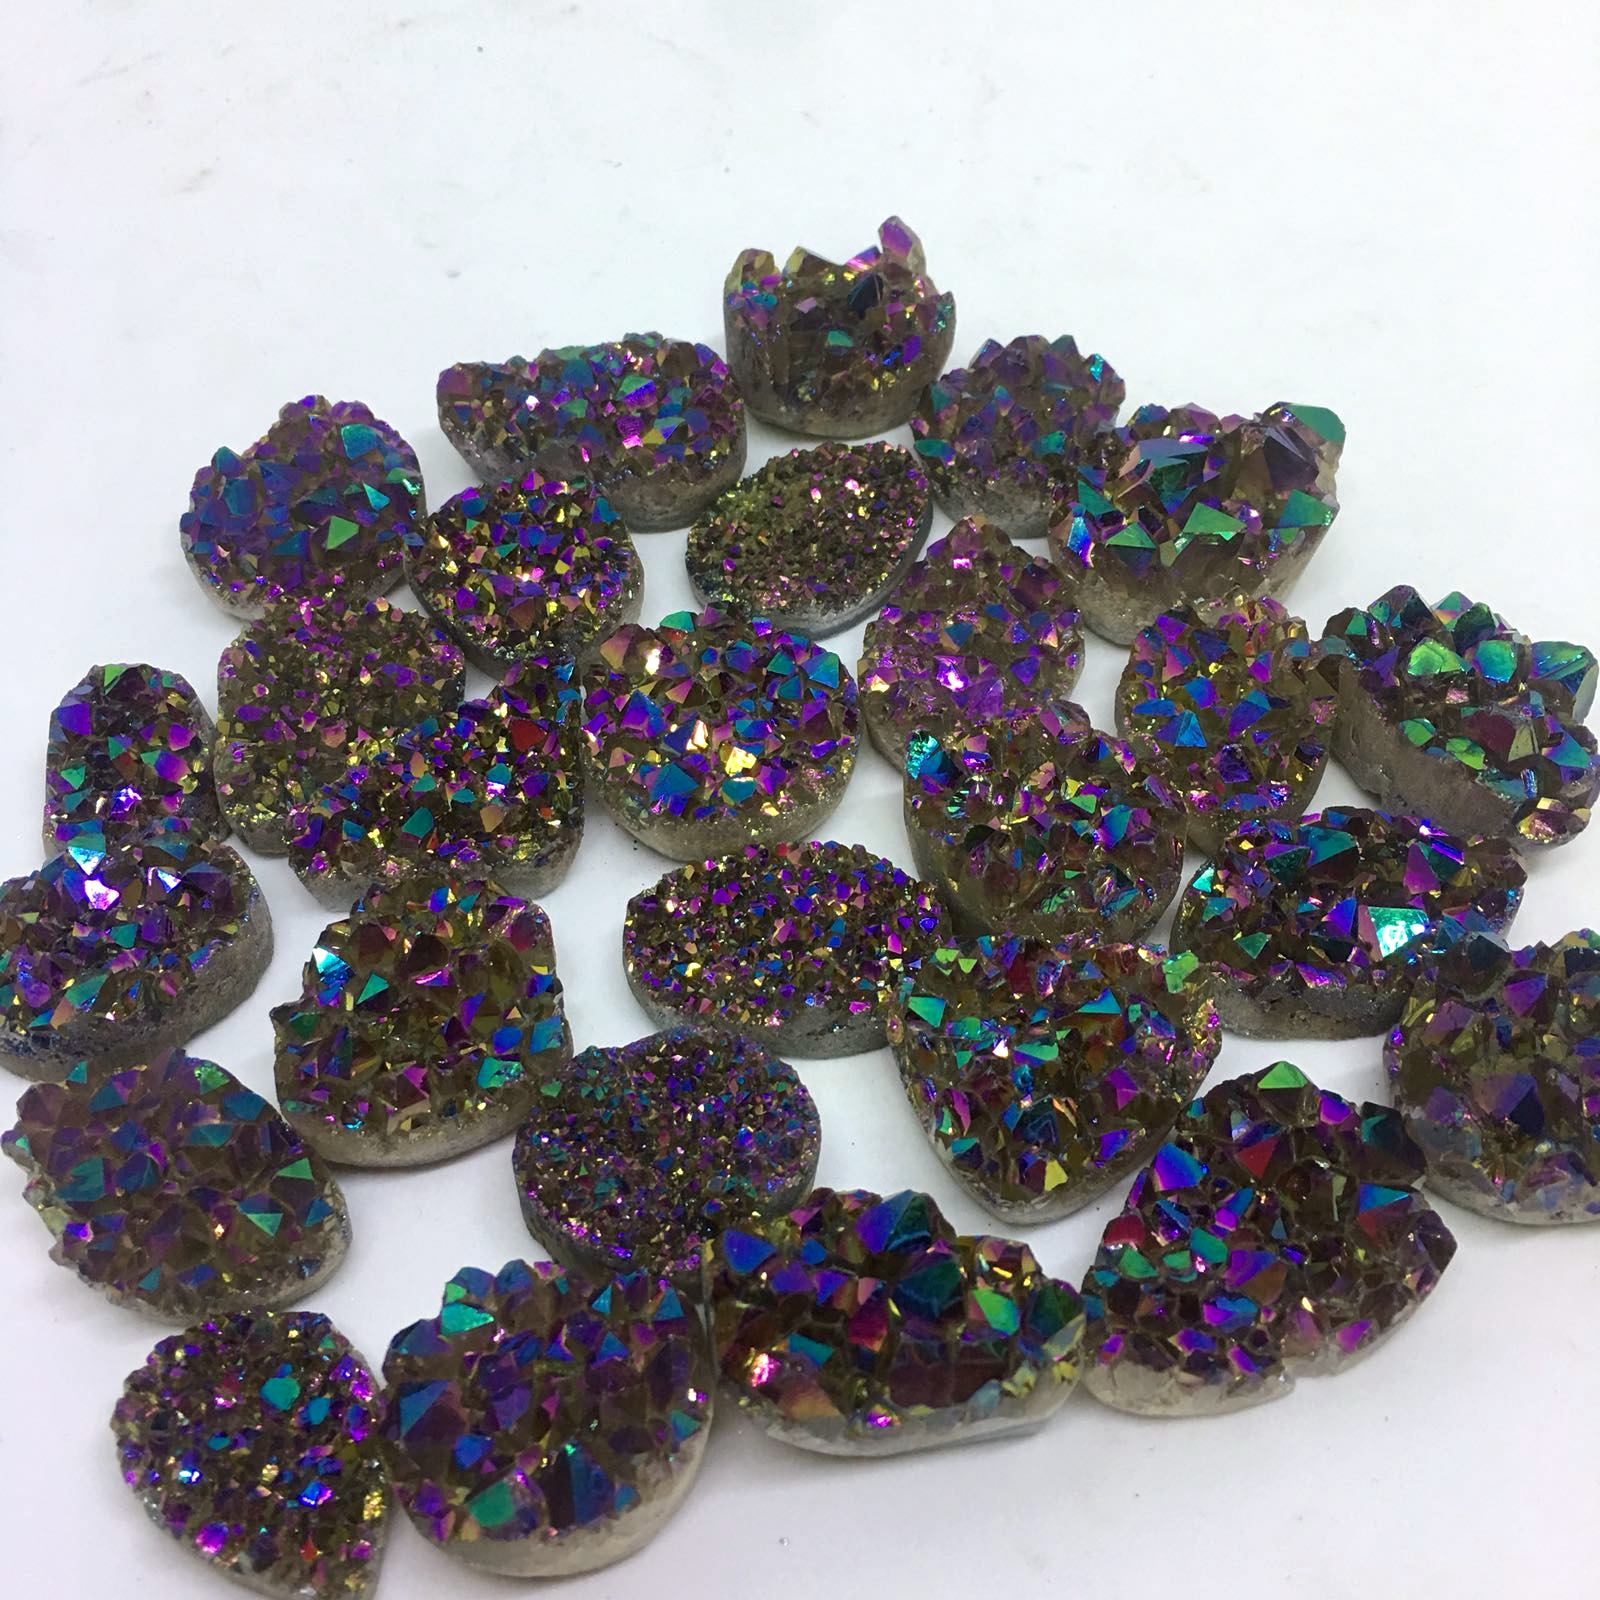 Stones from Uruguay - Rainbow Aura Coated Amethyts Druzy Free Form for Jewelry Making